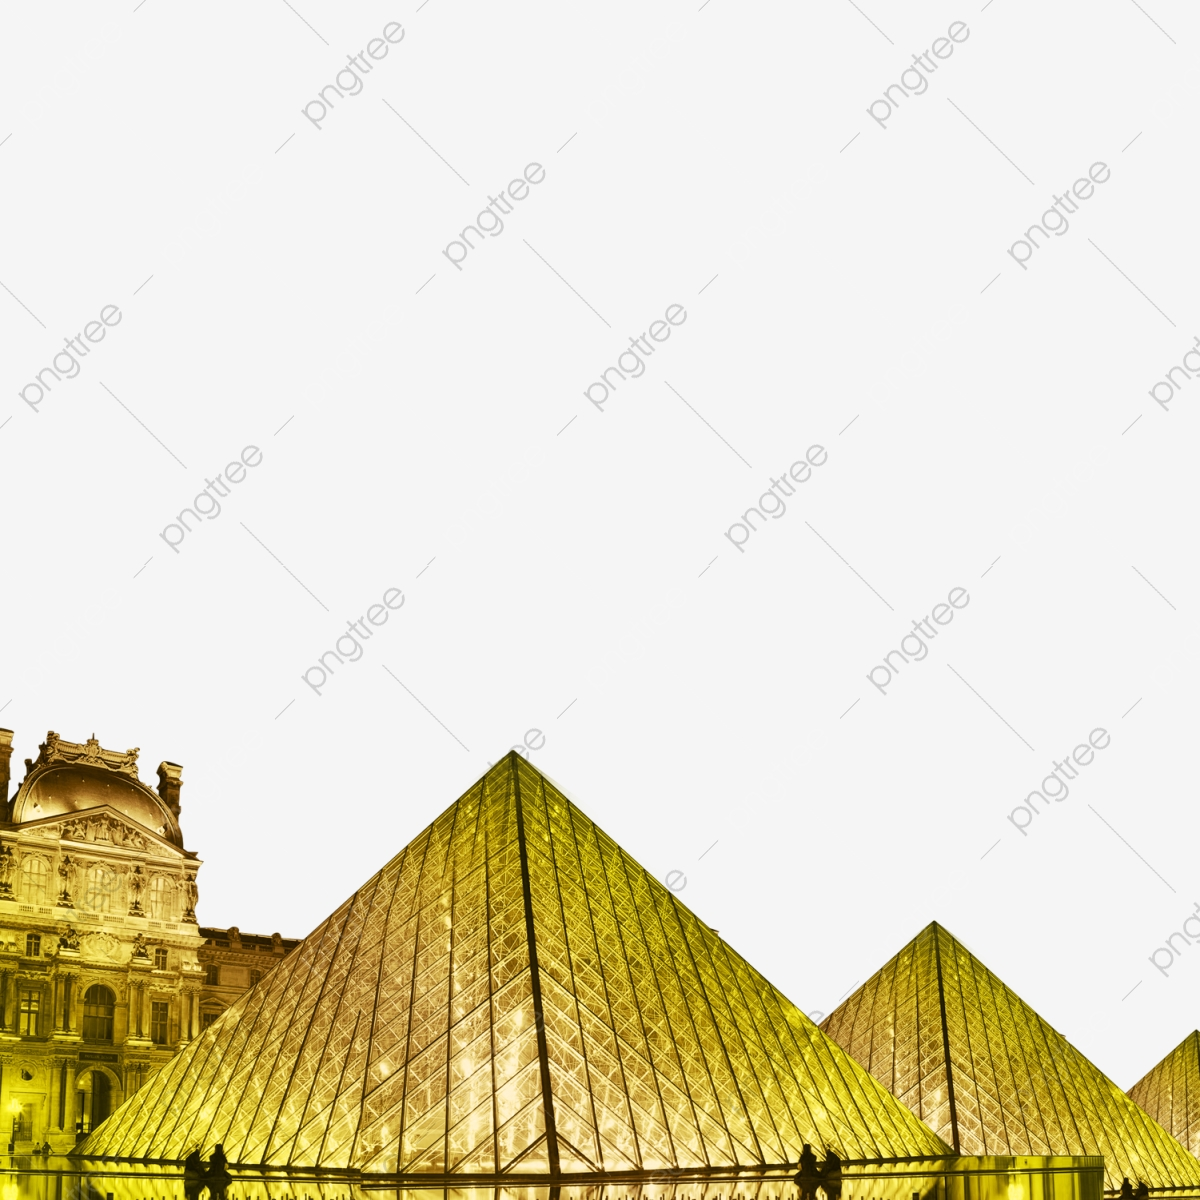 French Louvre France The Louvre Building PNG Transparent 1200x1200